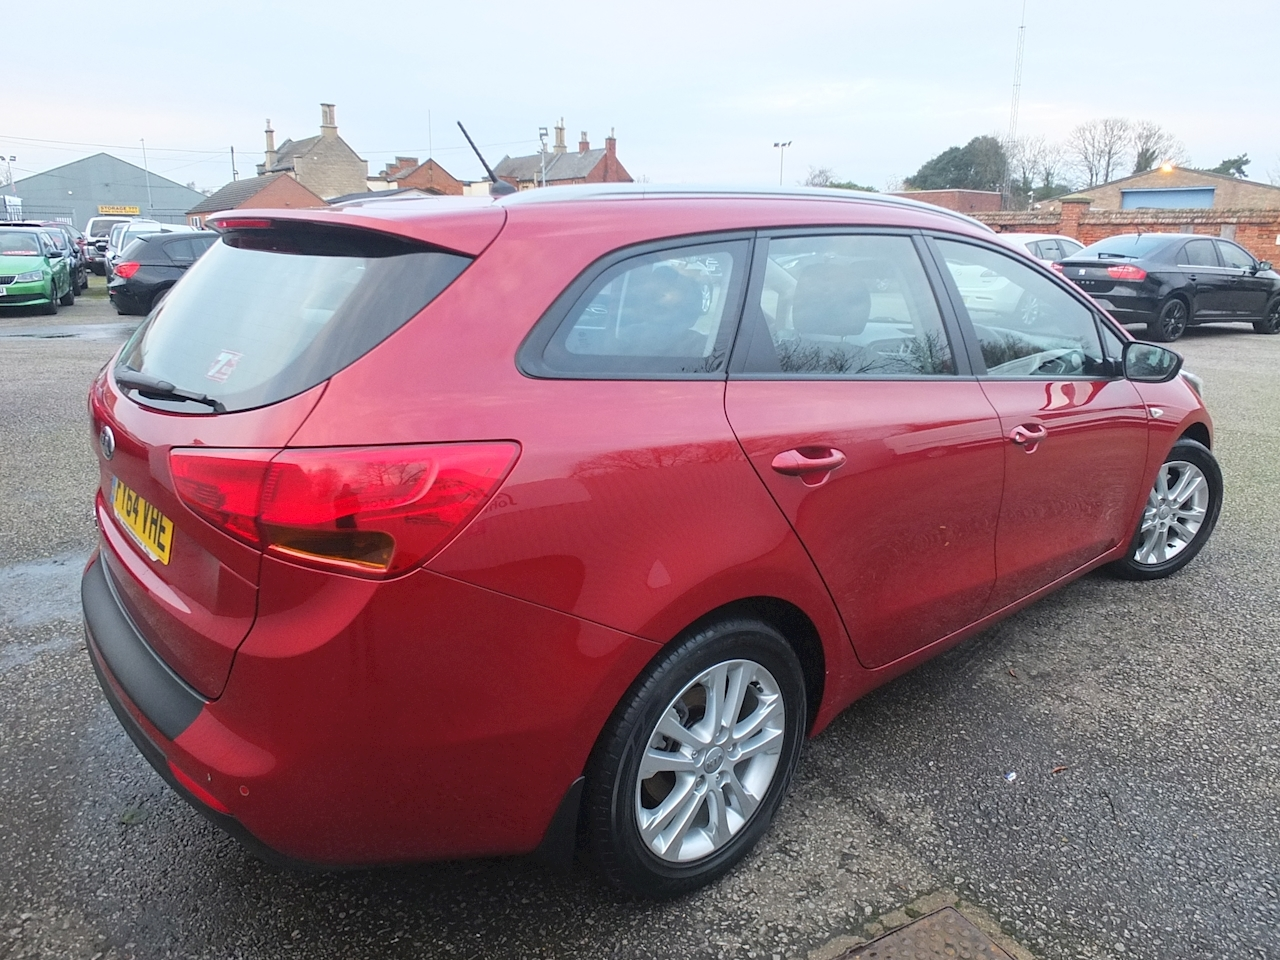 Ceed Vr7 Estate 1.4 Manual Petrol